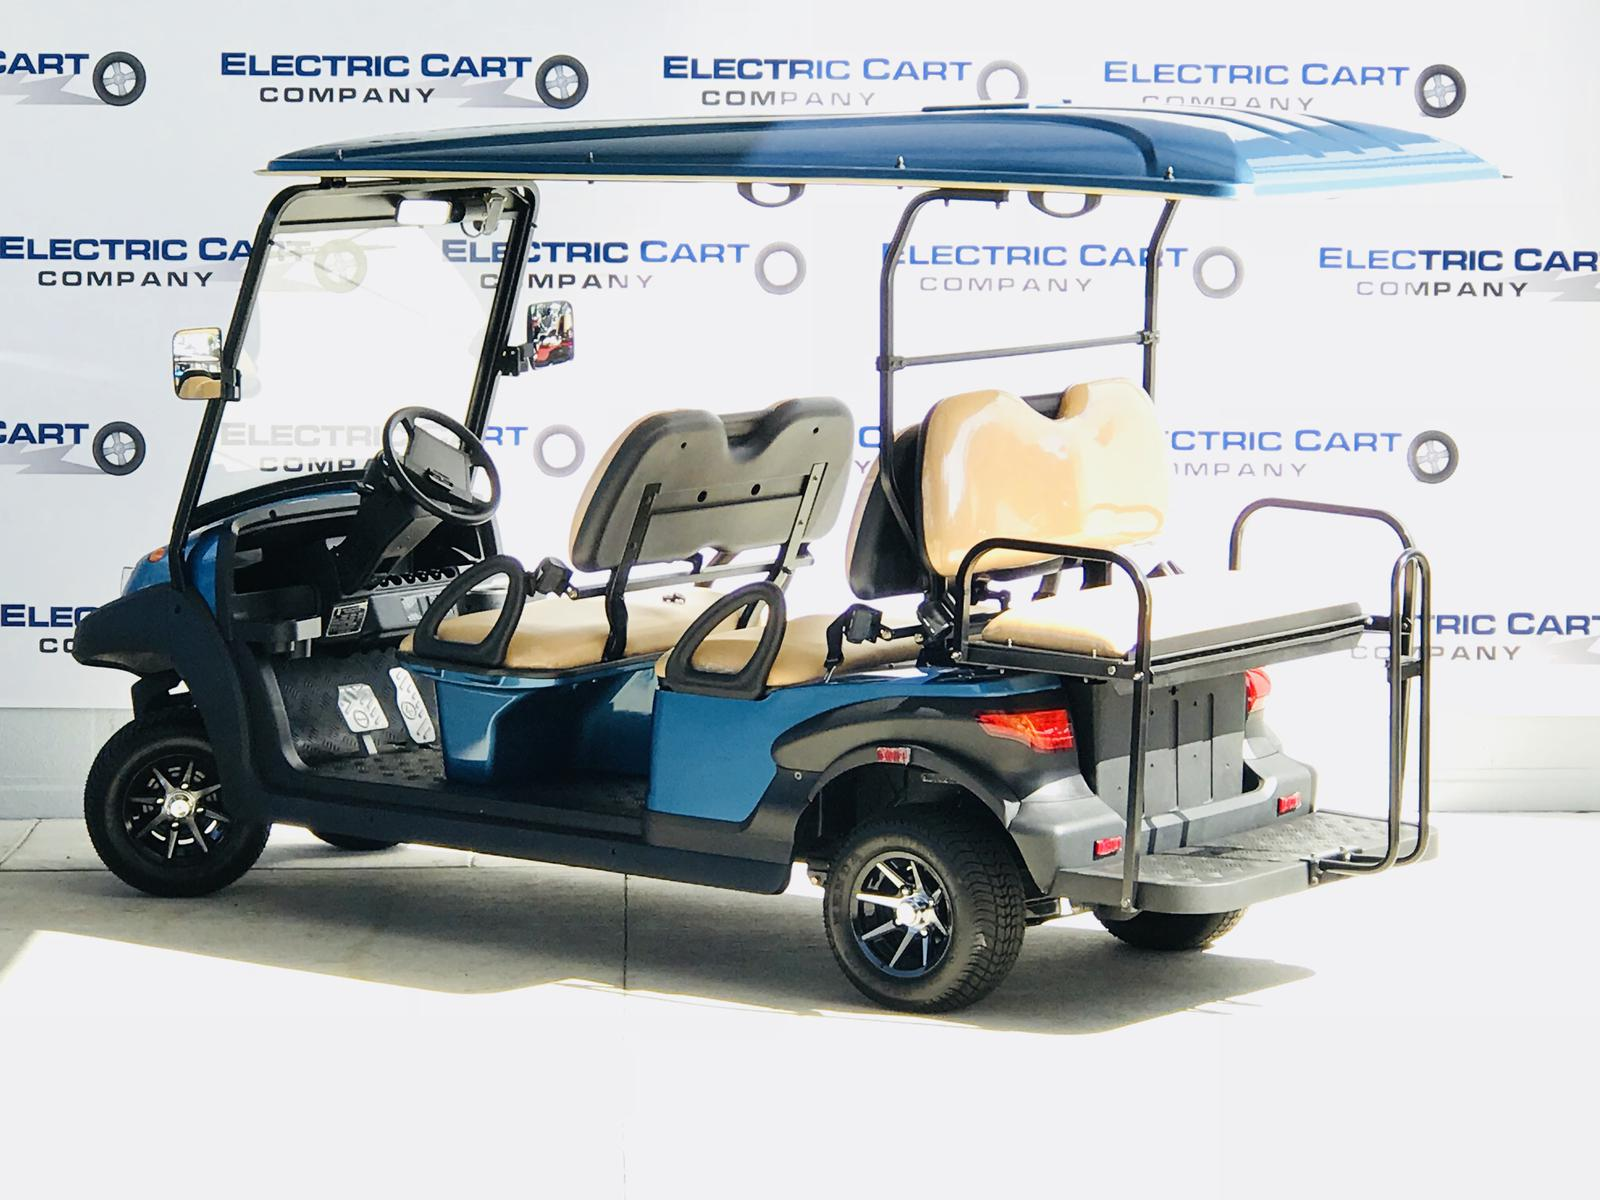 Inventory Electric Cart Company Santa Rosa Beach Santa Rosa Beach